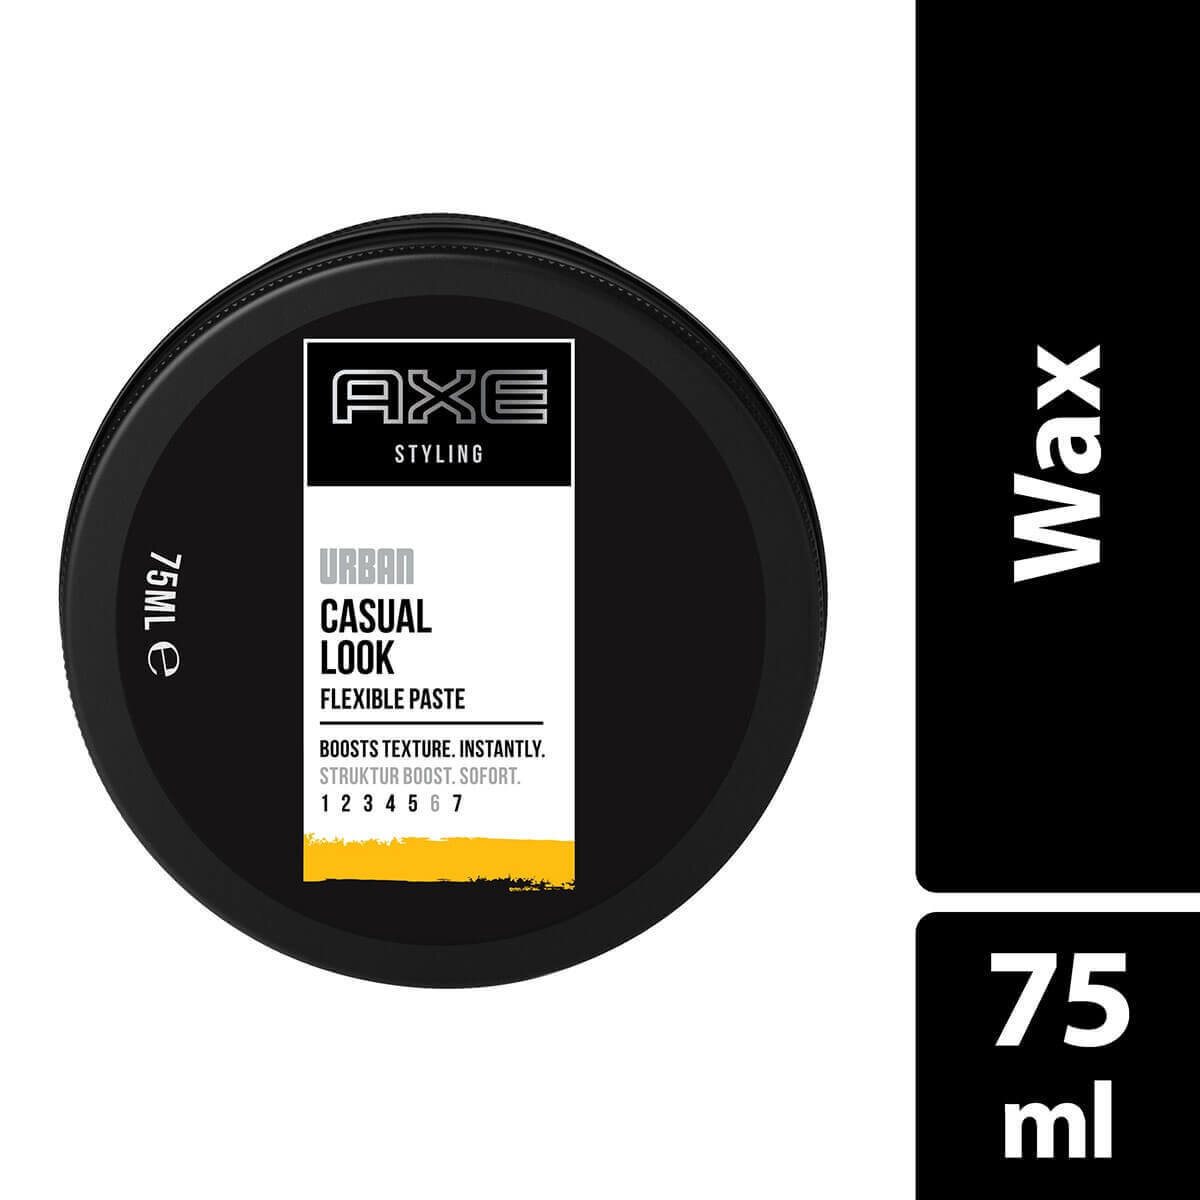 Wax Urban Casual Look 75ml